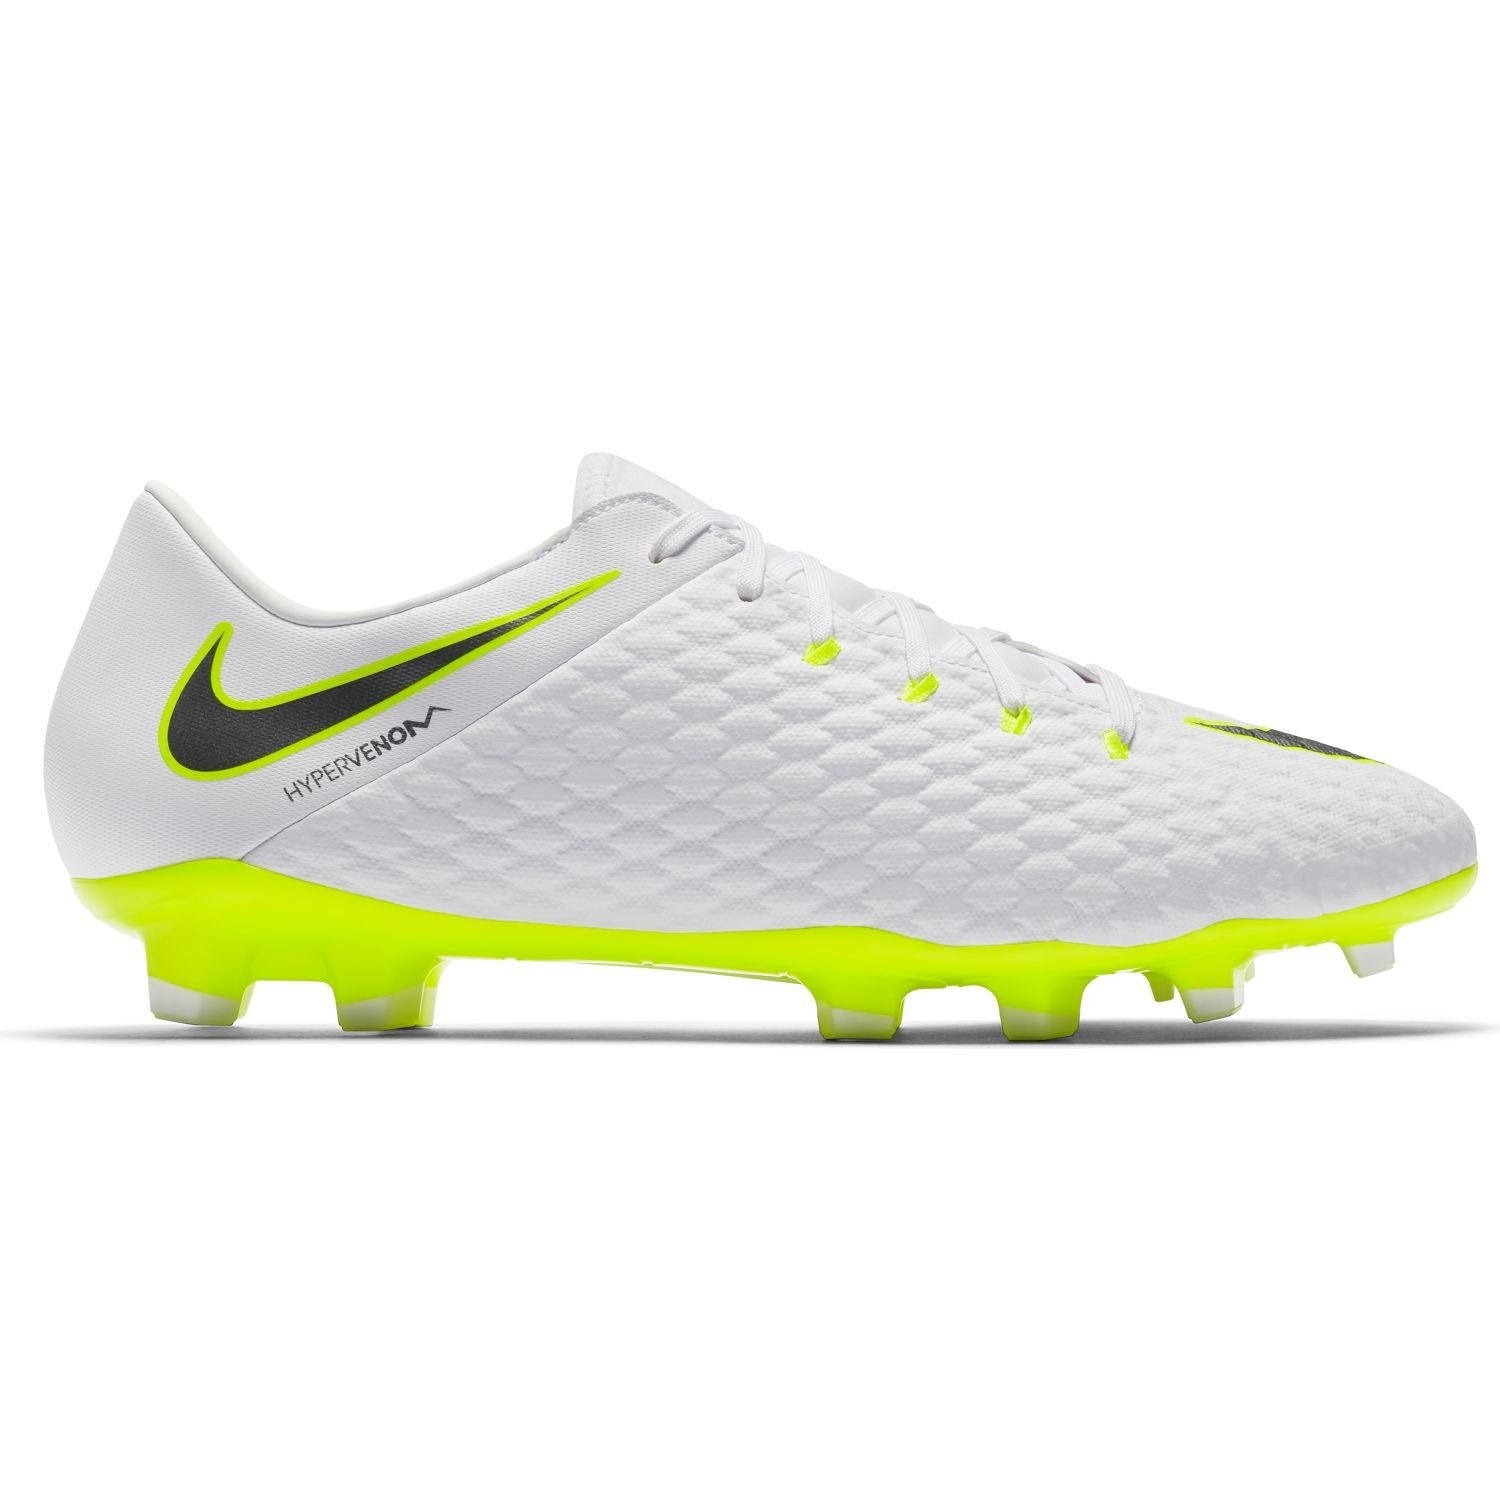 5fd138081 Nike Hypervenom Phantom III Academy FG - Mens Football Boots -  White Metallic Cool